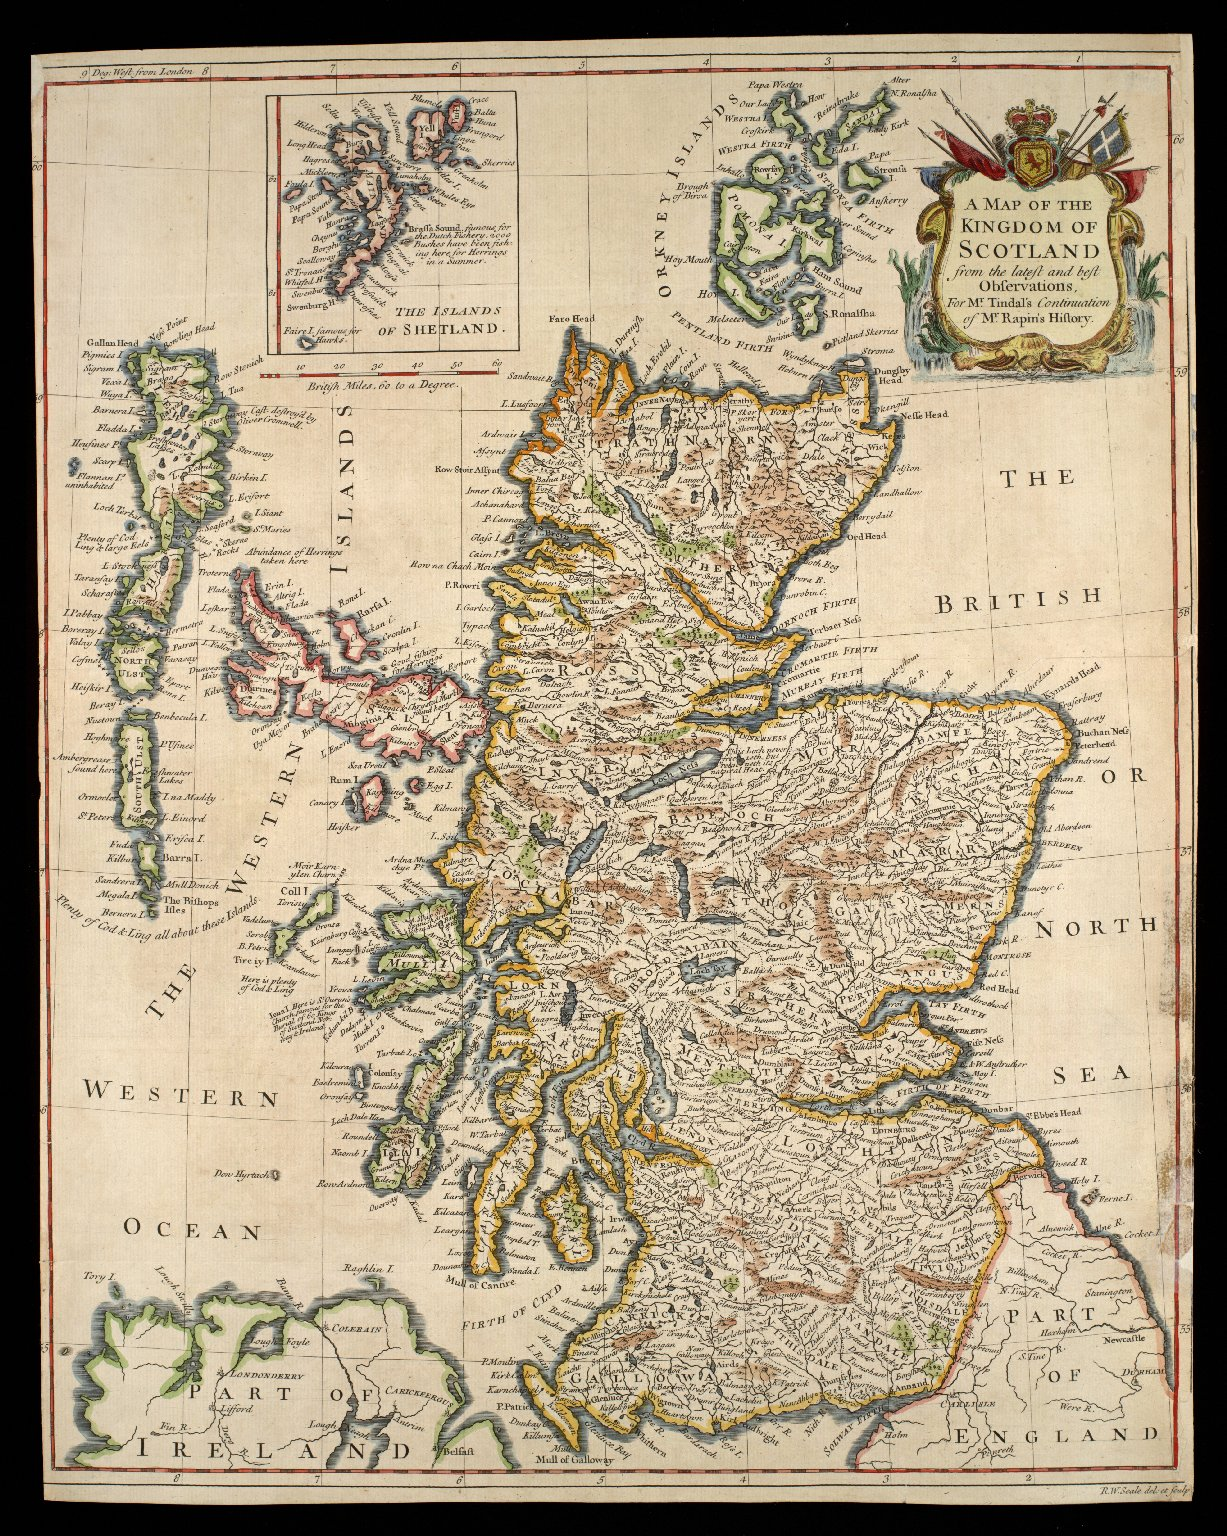 A Map of the Kingdom of Scotland from the latest and best observations, for Mr. Tindal's Continuation of Mr. Rapin's History [1 of 1]